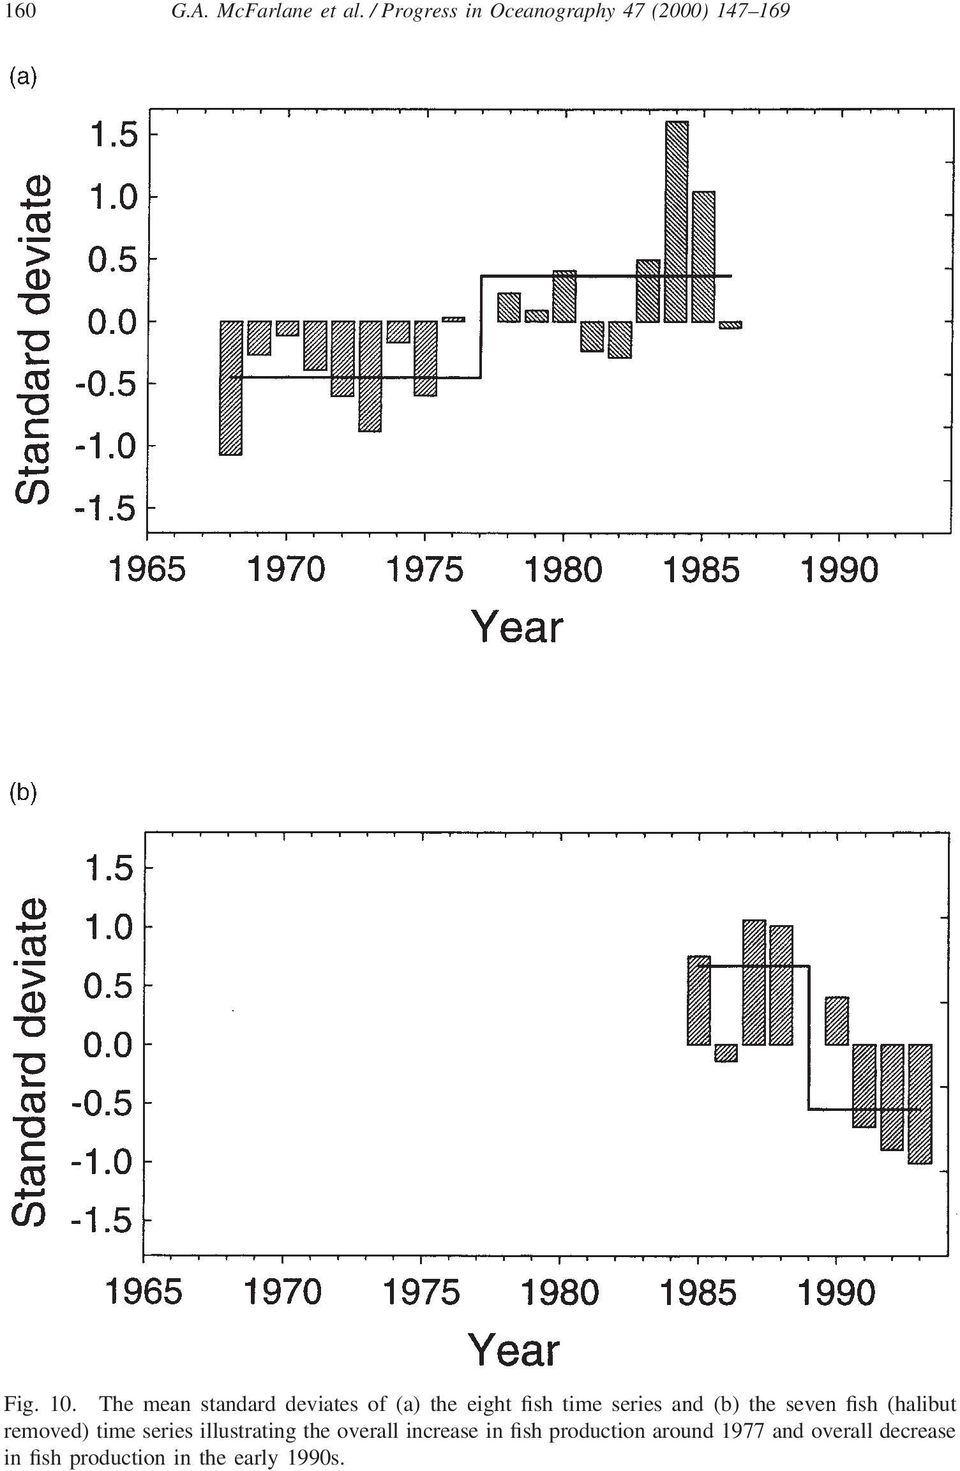 fish (halibut removed) time series illustrating the overall increase in fish